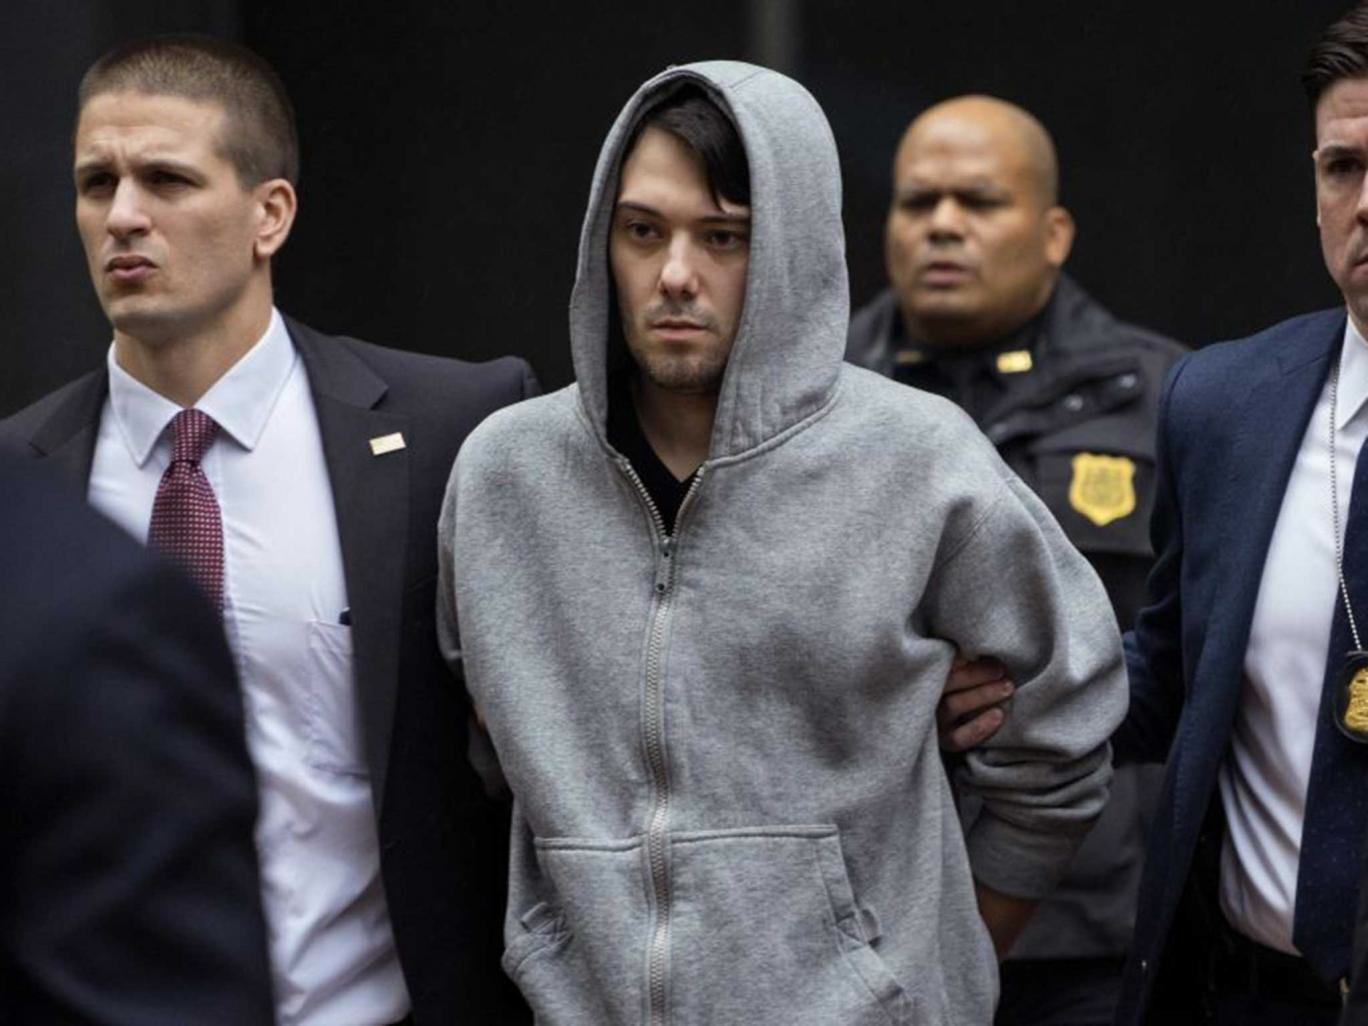 Most Hated Man On The Internet Claims His Shitty Behaviour Is All An Act shkreli 3